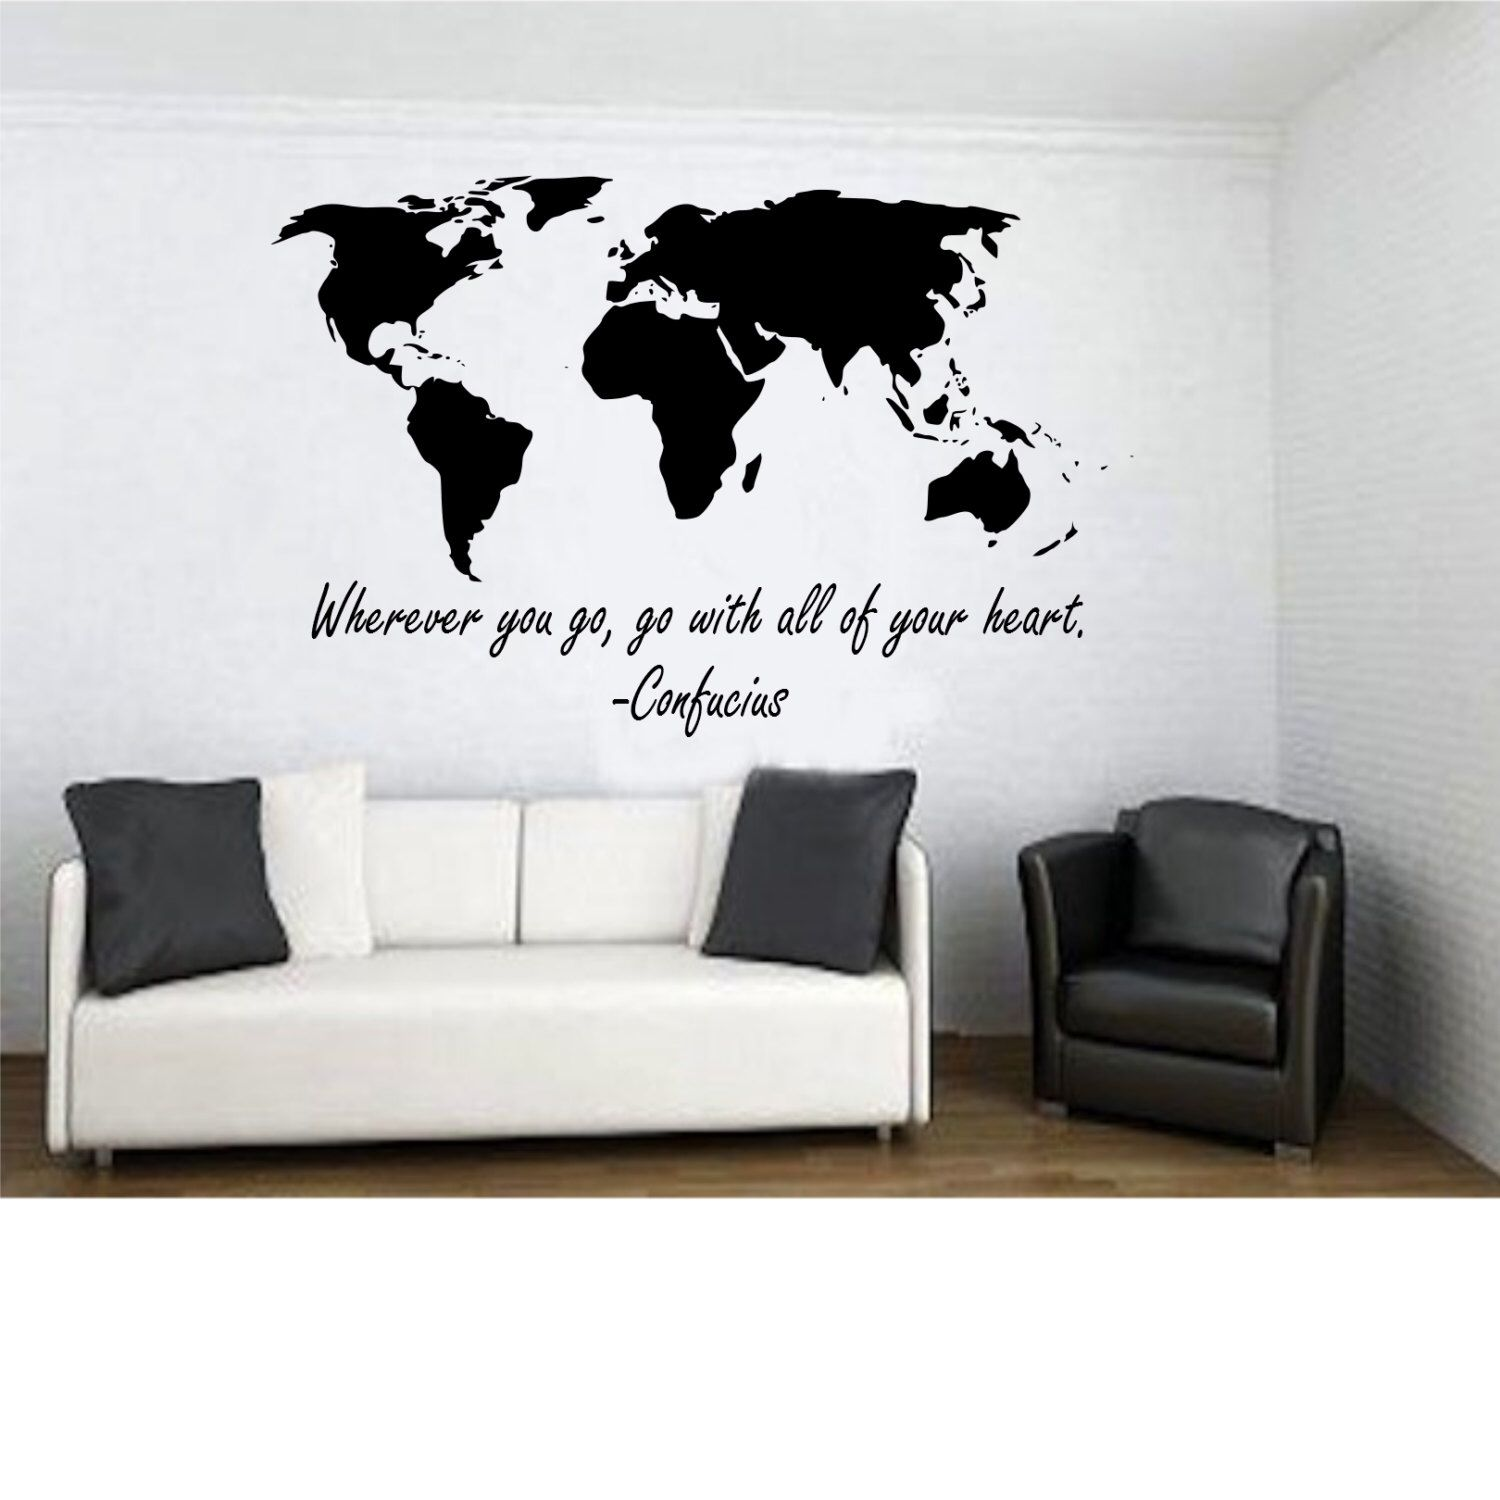 World map with wherever you go go with all of your heart wall world map with wherever you go go with all of your heart confucius quote wall decal by tipitdesigns on etsy gumiabroncs Images